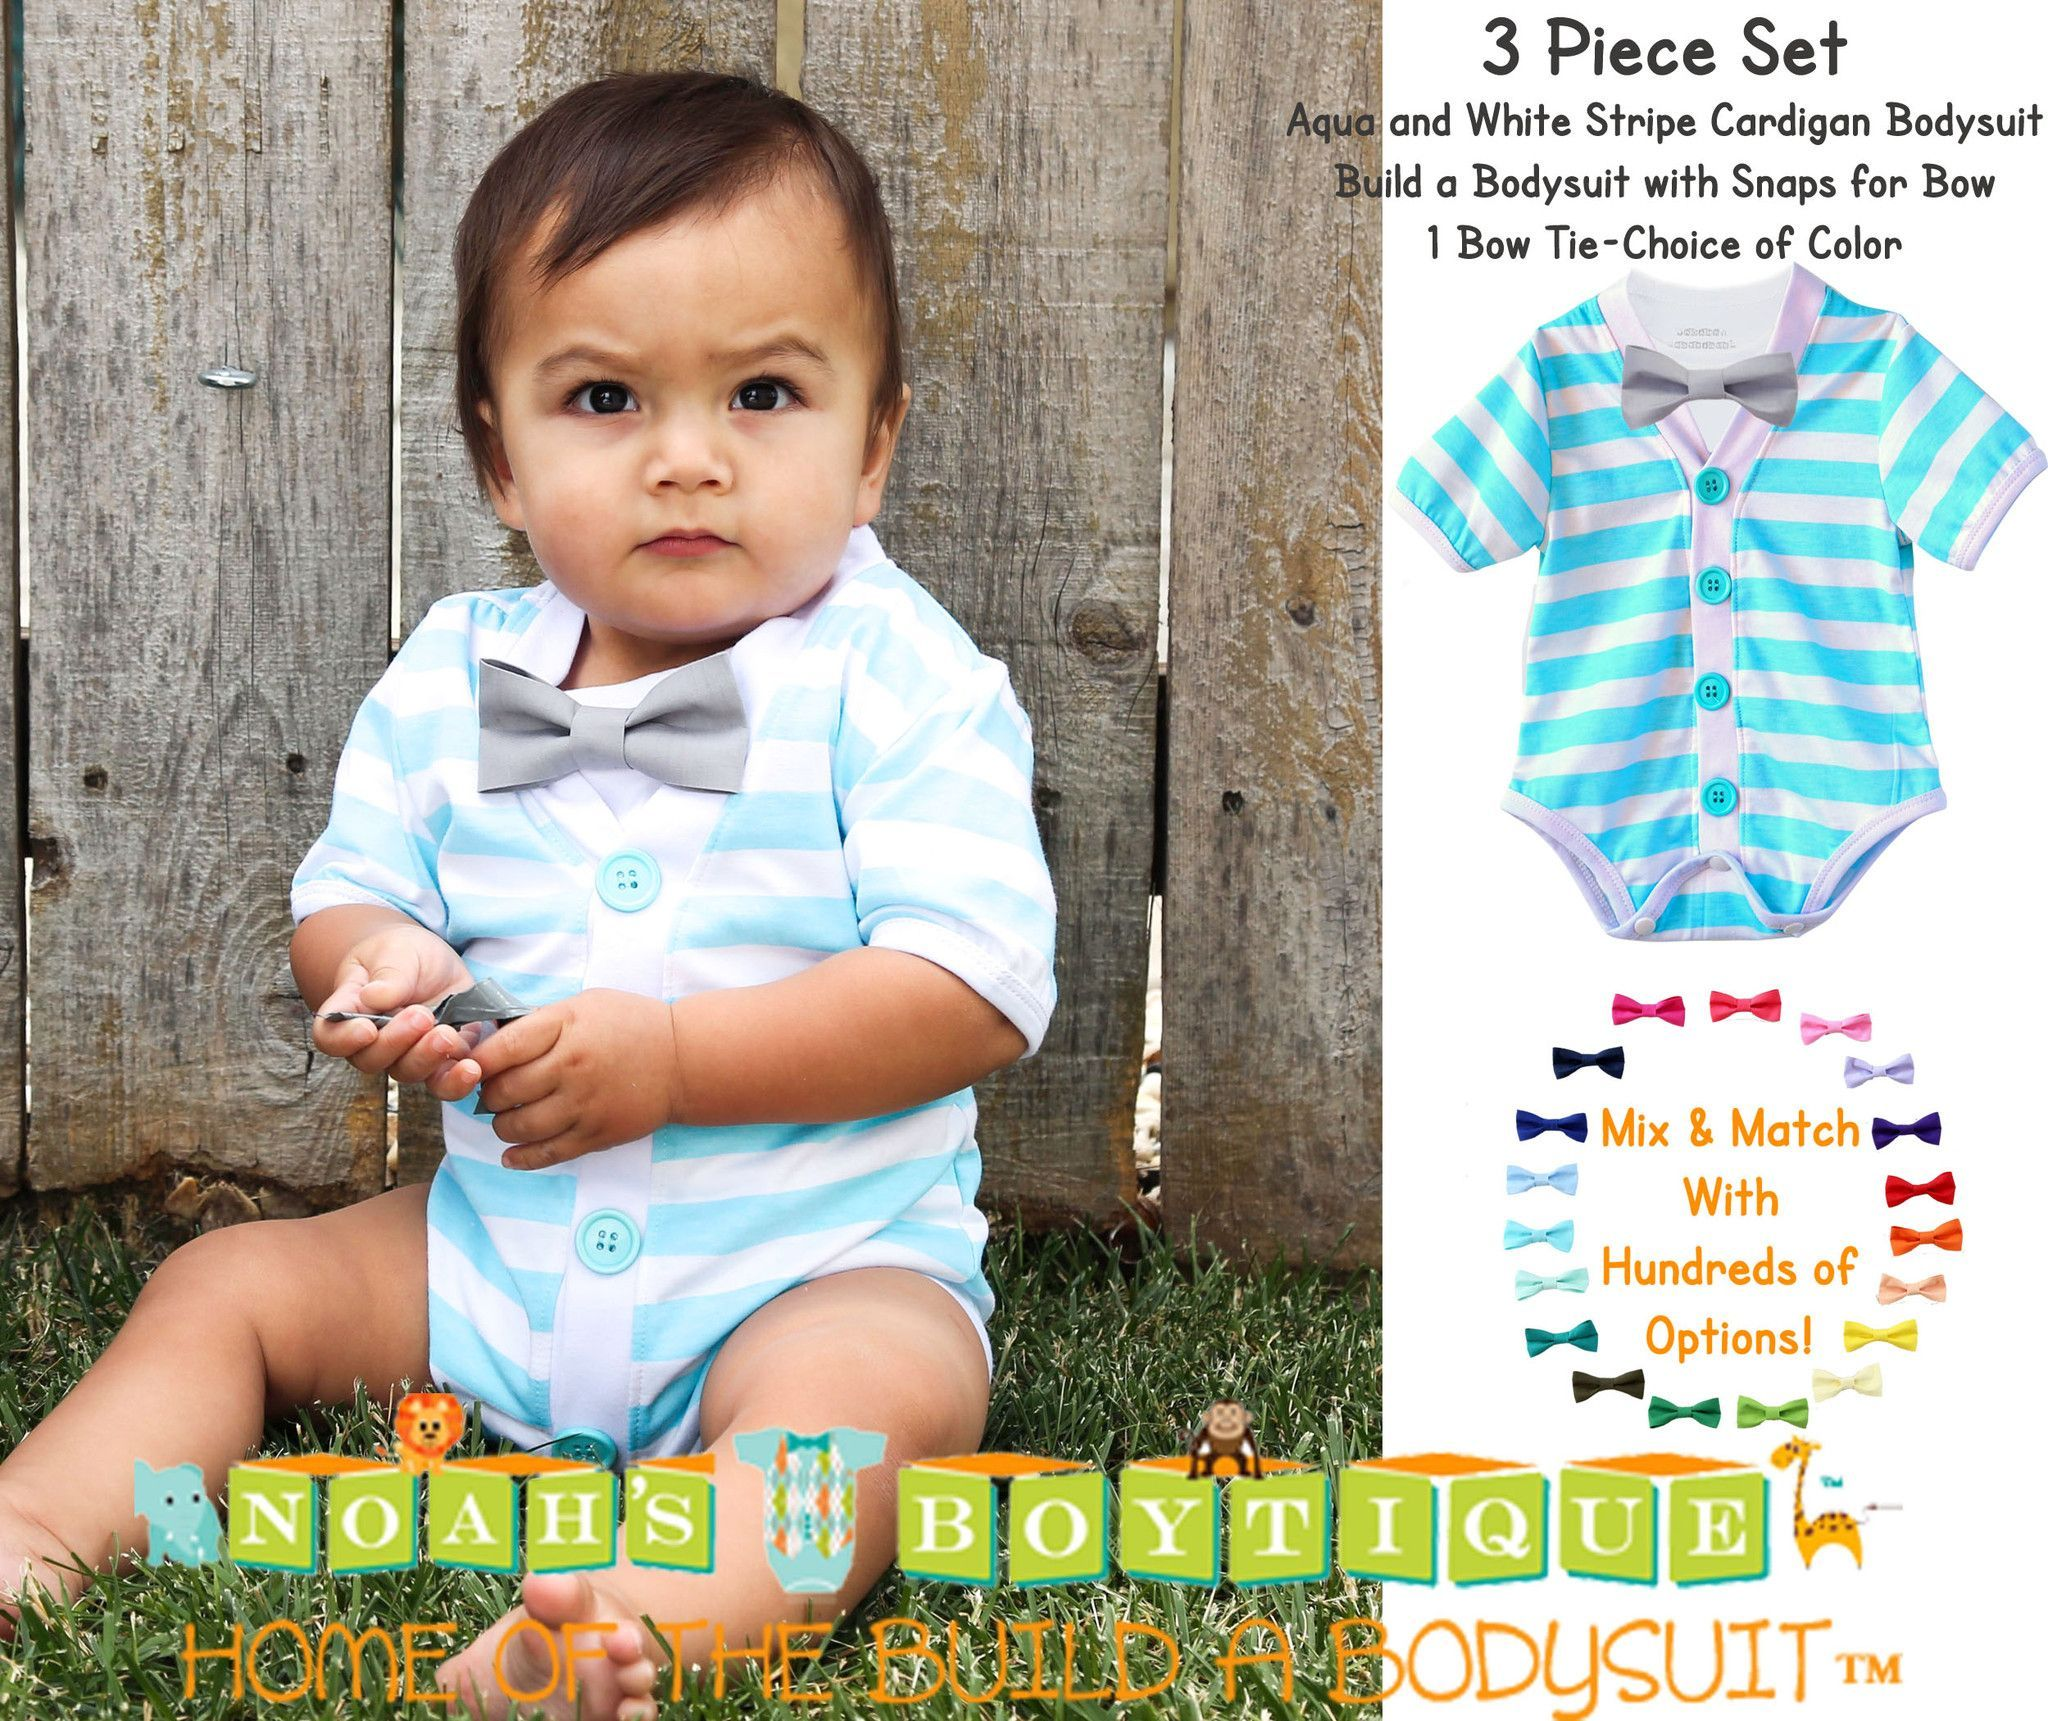 3dc2052ec040 Baby Boy Cardigan Outfit with Bow Tie Aqua Blue and Grey Set